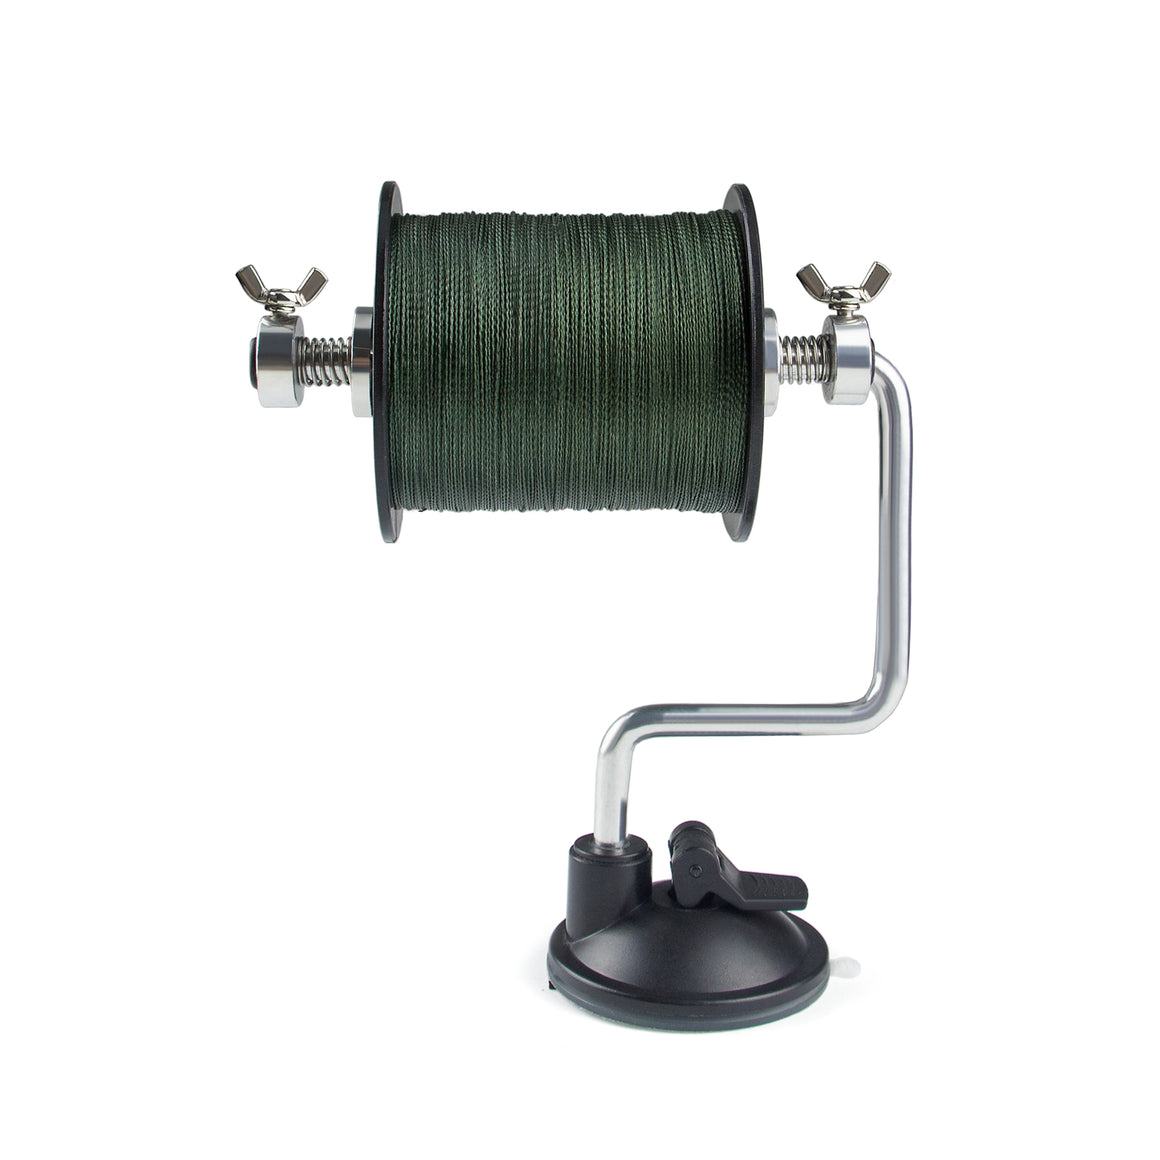 LR1 Line Spooler Adjustable for Varying Spool Sizes